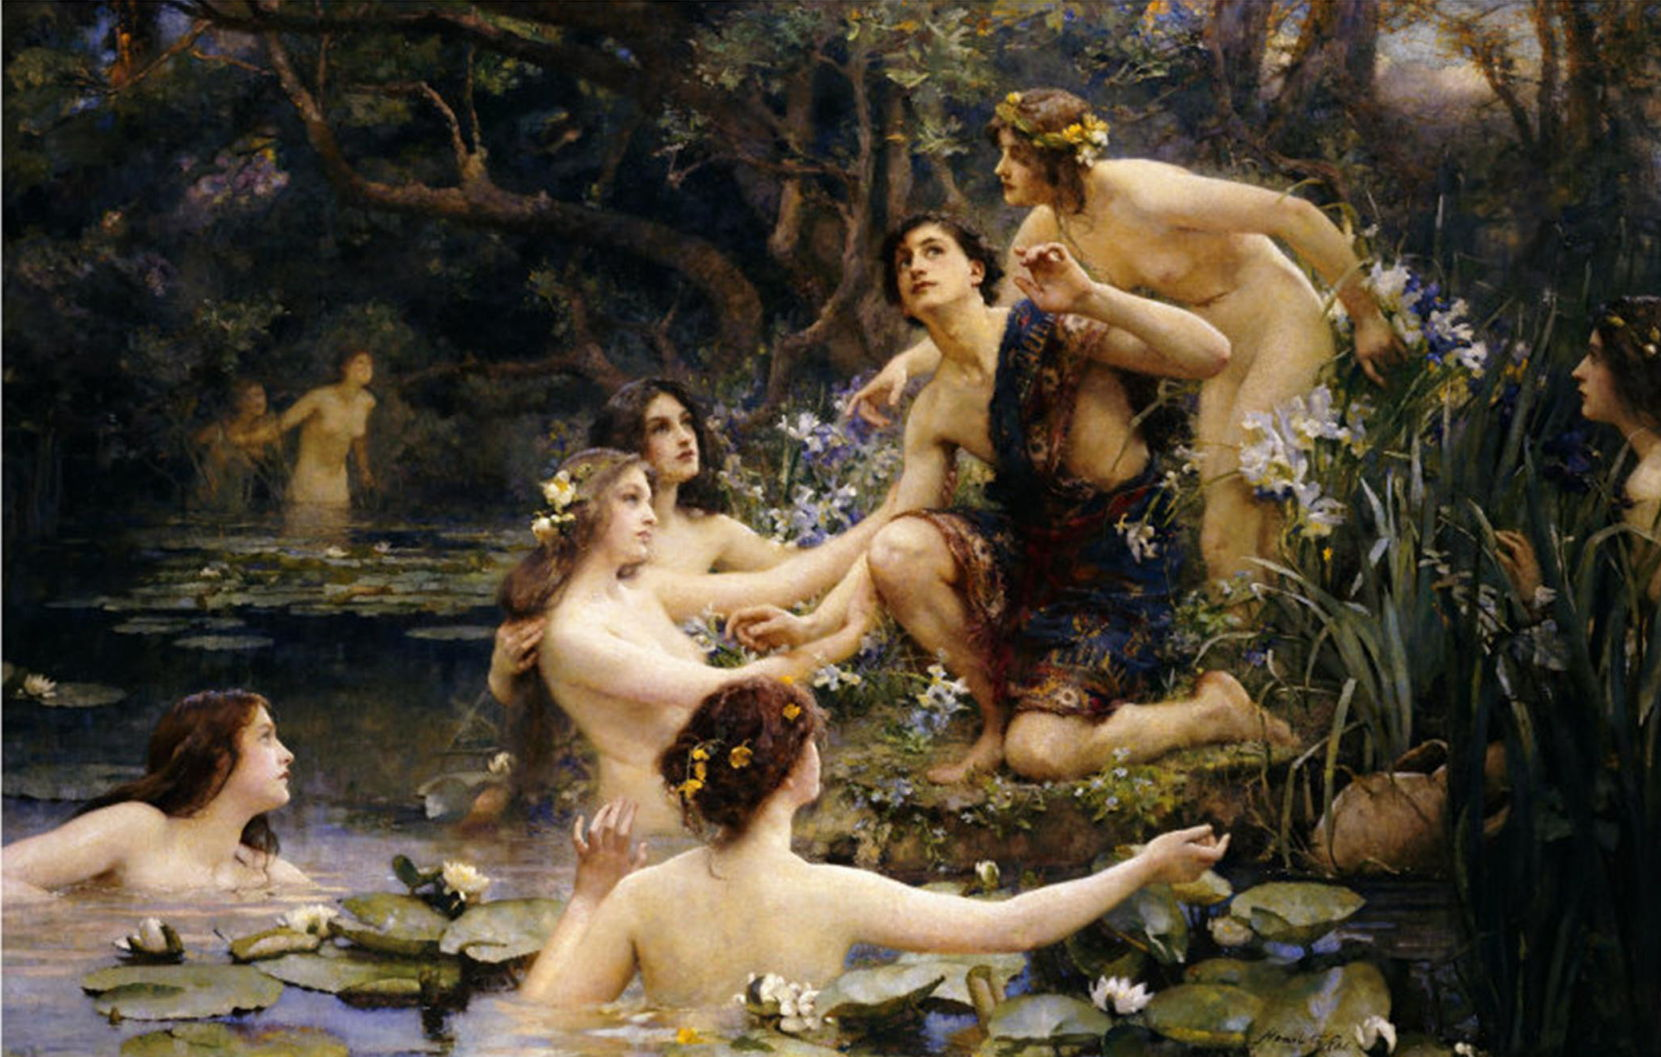 Nude water nymphs